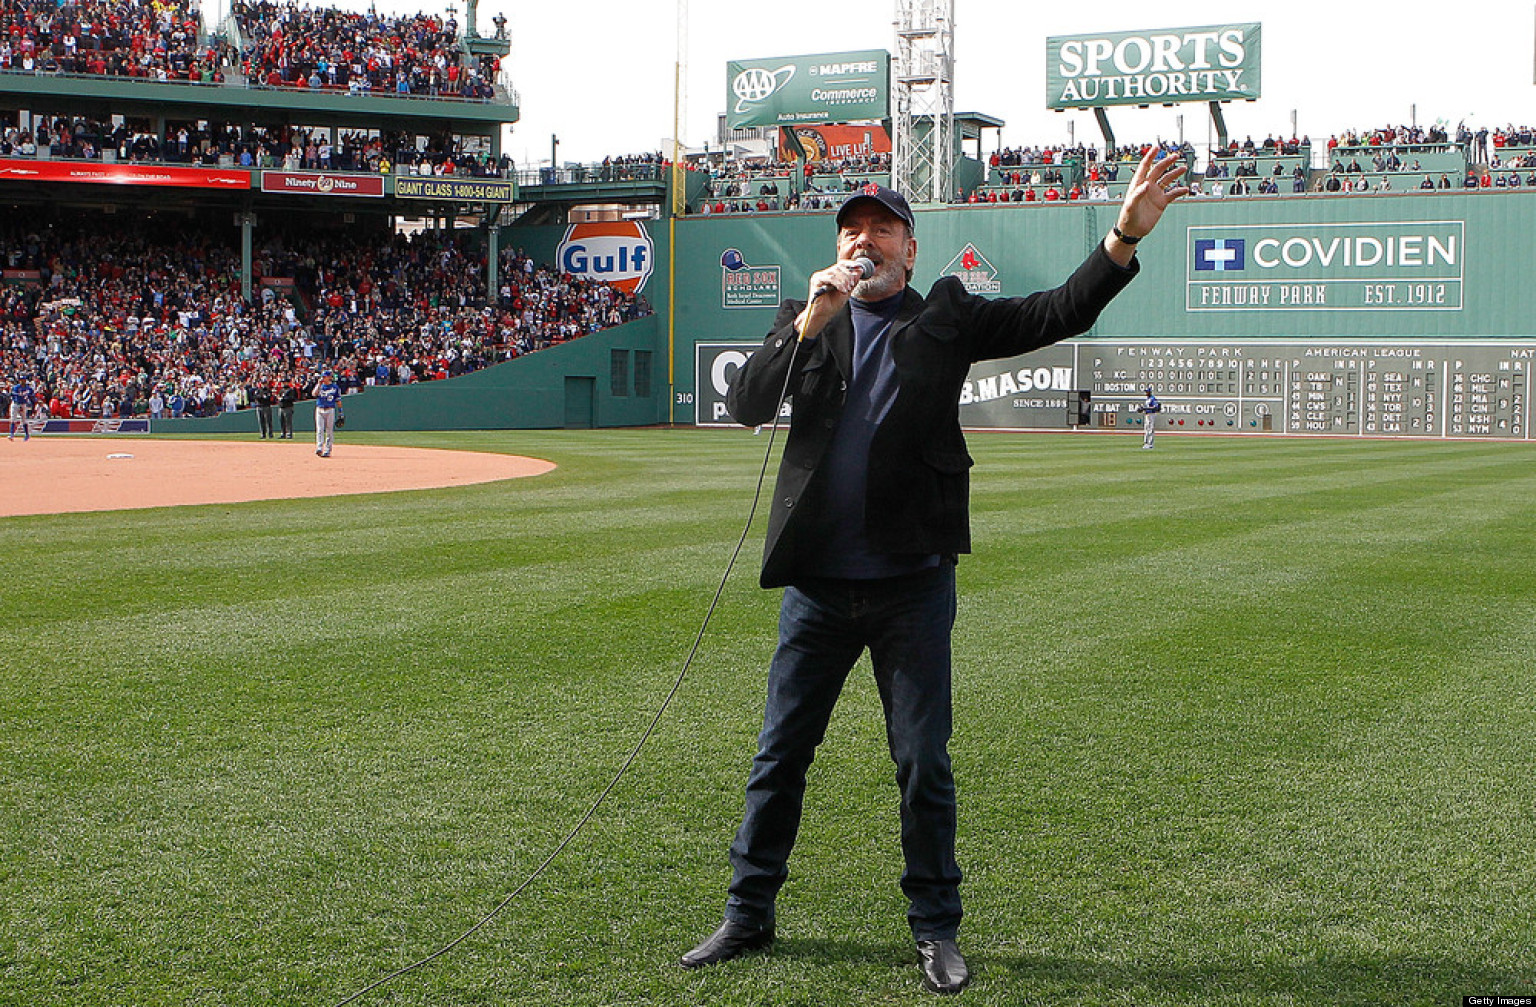 WATCH: Neil Diamond Sings 'Sweet Caroline' At Fenway